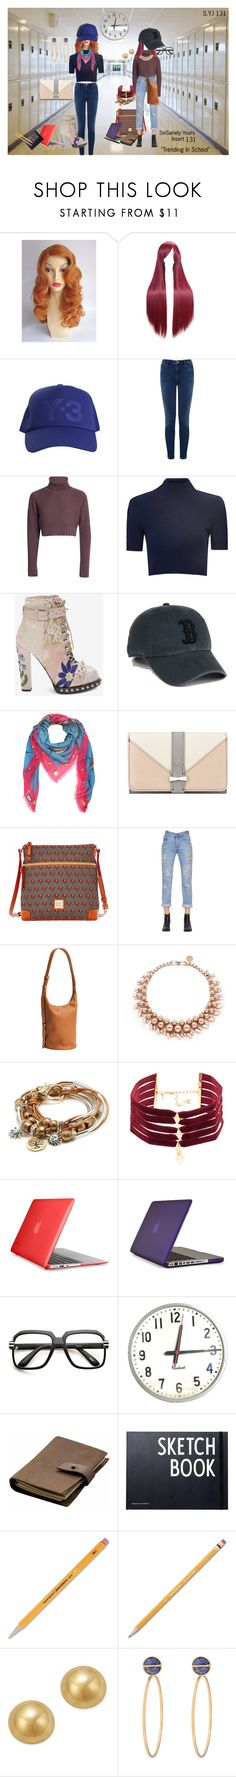 """""""Insert 131"""" by sariespencer ❤ liked on Polyvore featuring Y-3, Warehouse, Glamorous, Gucci, Nine West, Dooney & Bourke, Forte Couture, BAGGU, Ellen Conde and Lizzy James"""